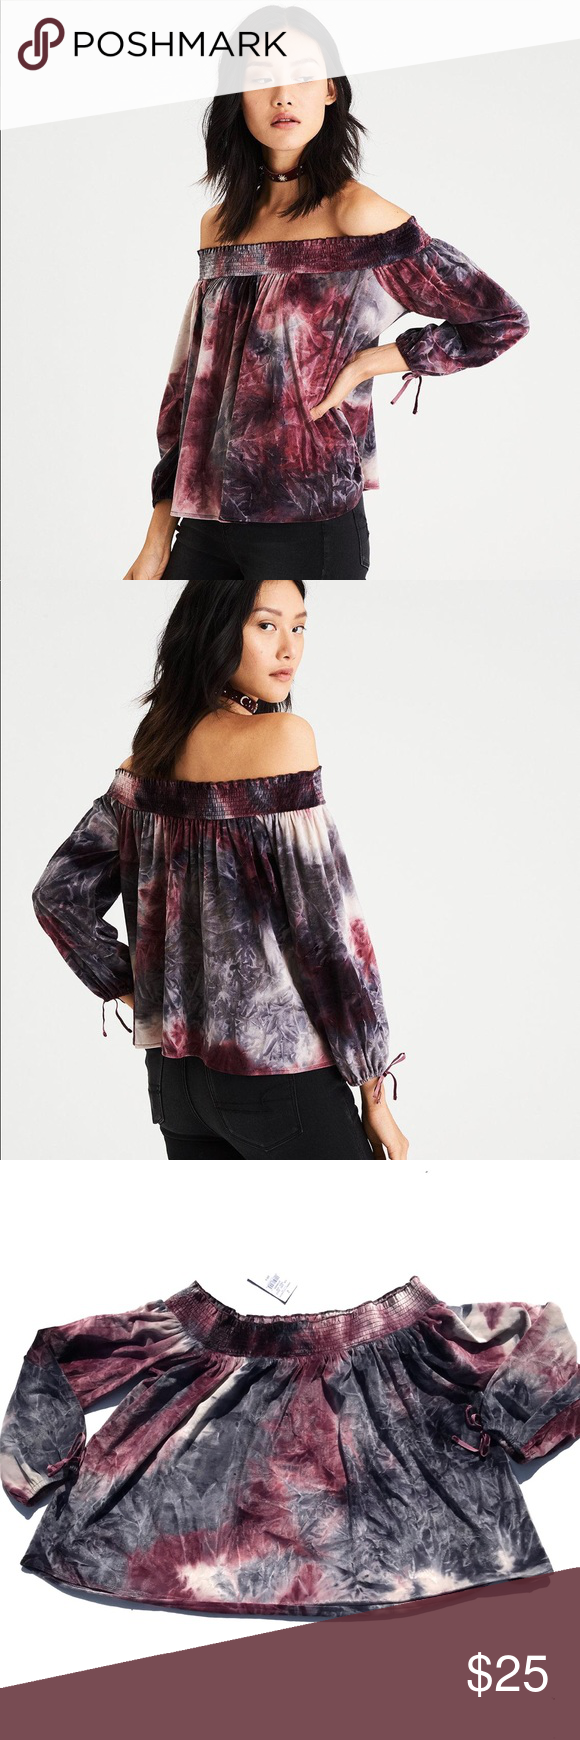 ed79bda484bd6f NWT American Eagle Off Shoulder Tie Dye Velvet Top This off the shoulder  blouse is brand